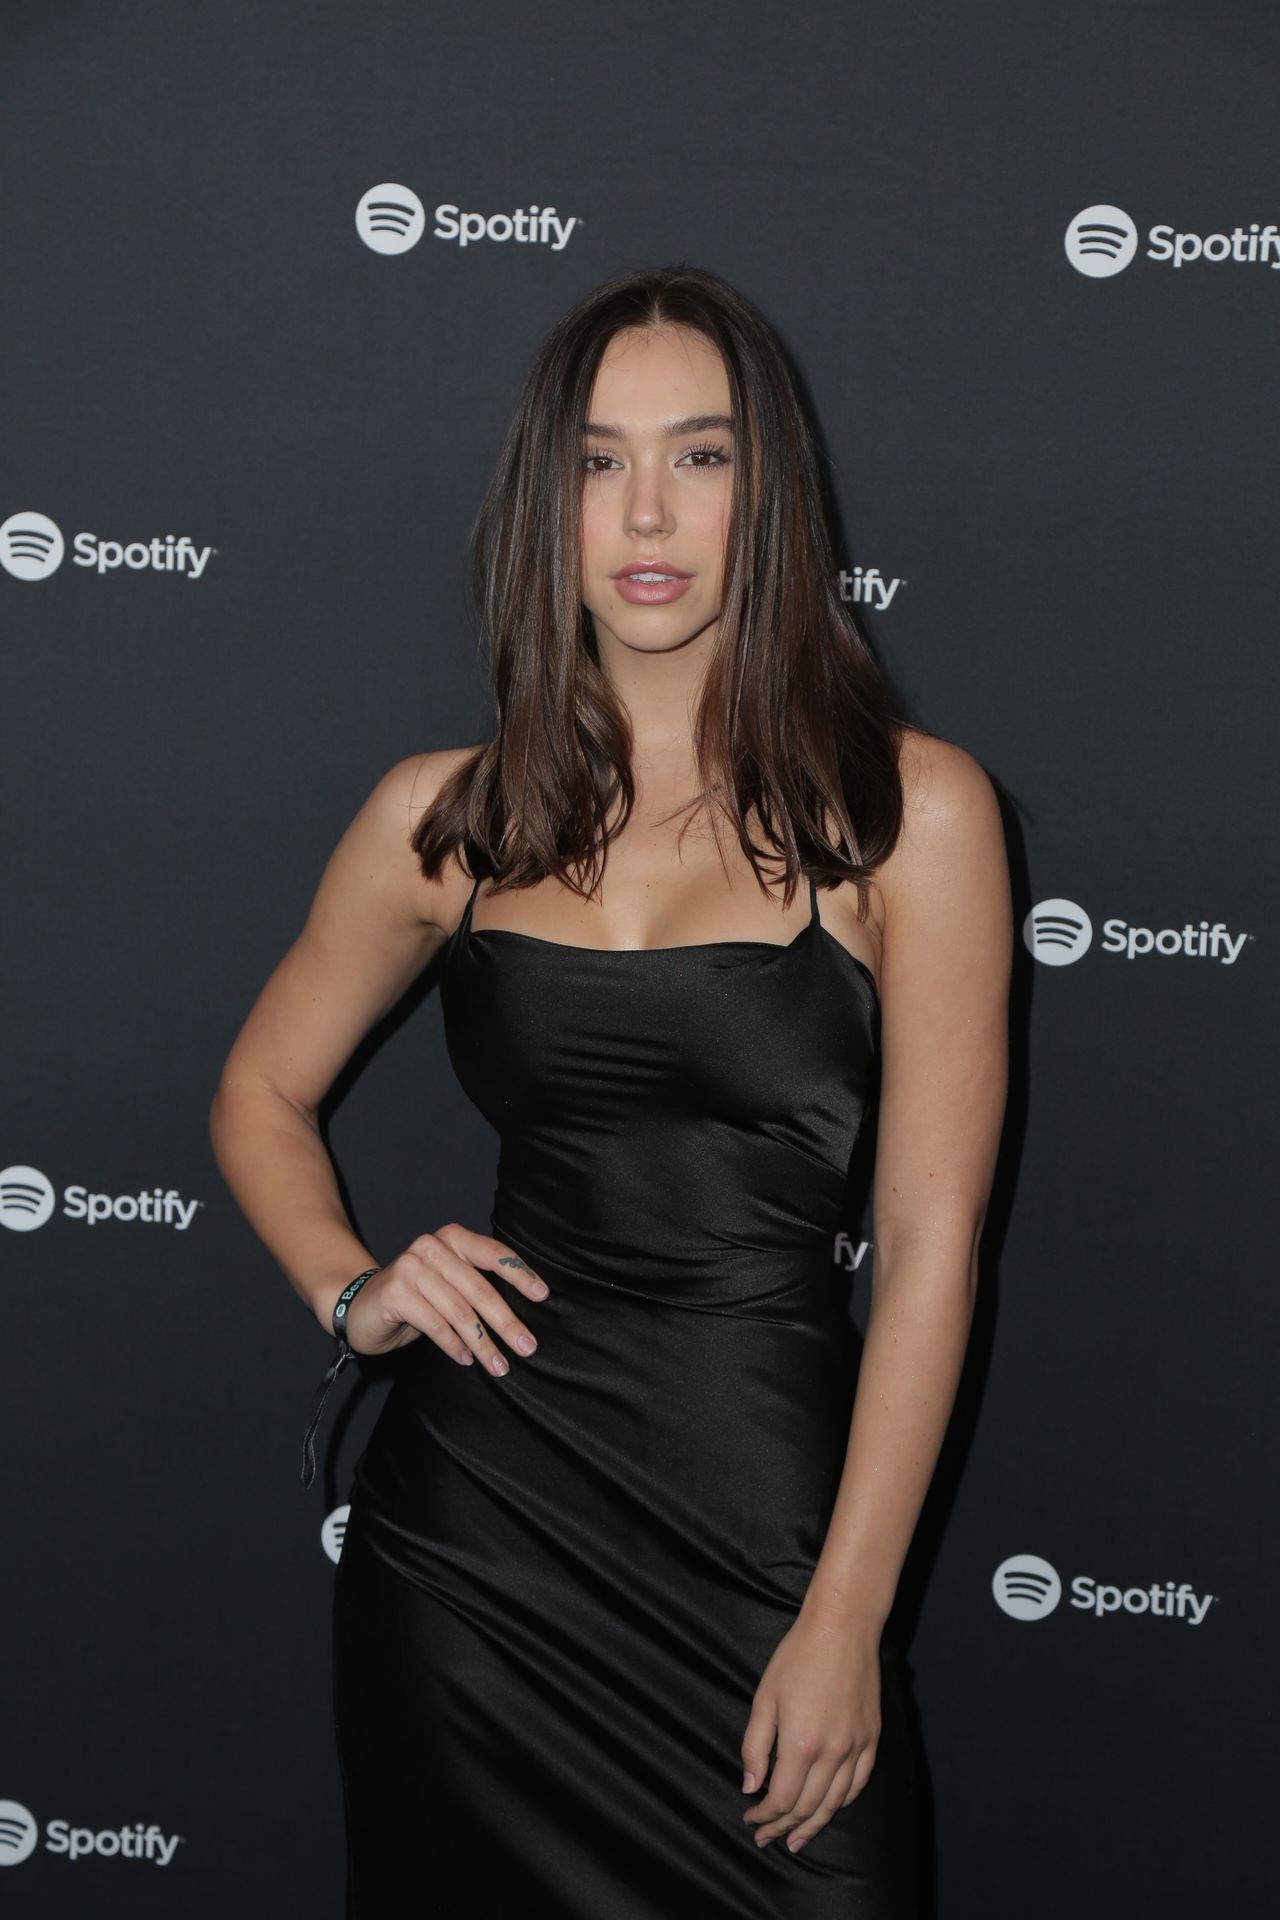 Alexis Ren Shows Off Her Tits At The Spotify Best New Artist Party 0012